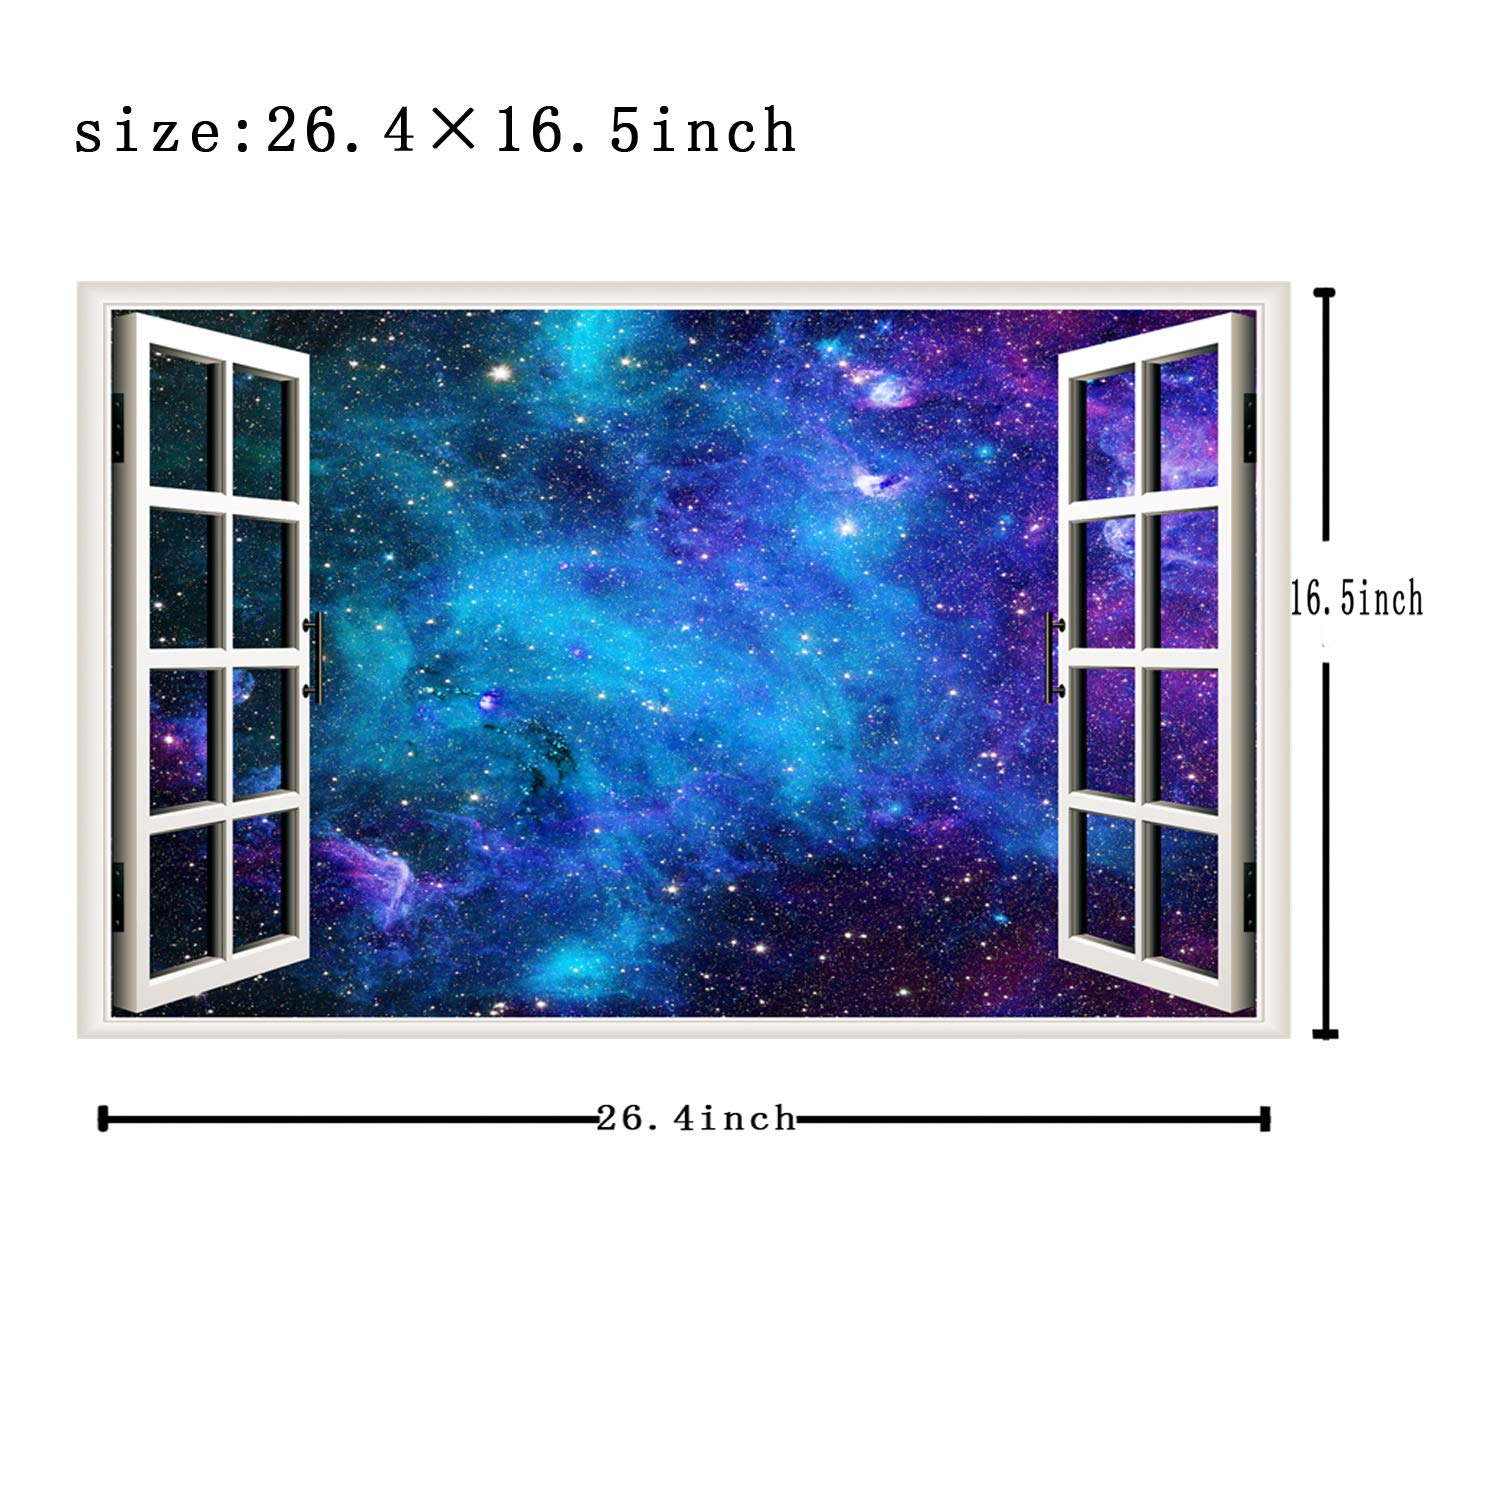 Astronomy Gift Wall Art Boyfriend Gift Science Gift Guy Friend Gift Decal Outer Space Wall Decor Astronomy Decal Galaxy Wall Decal